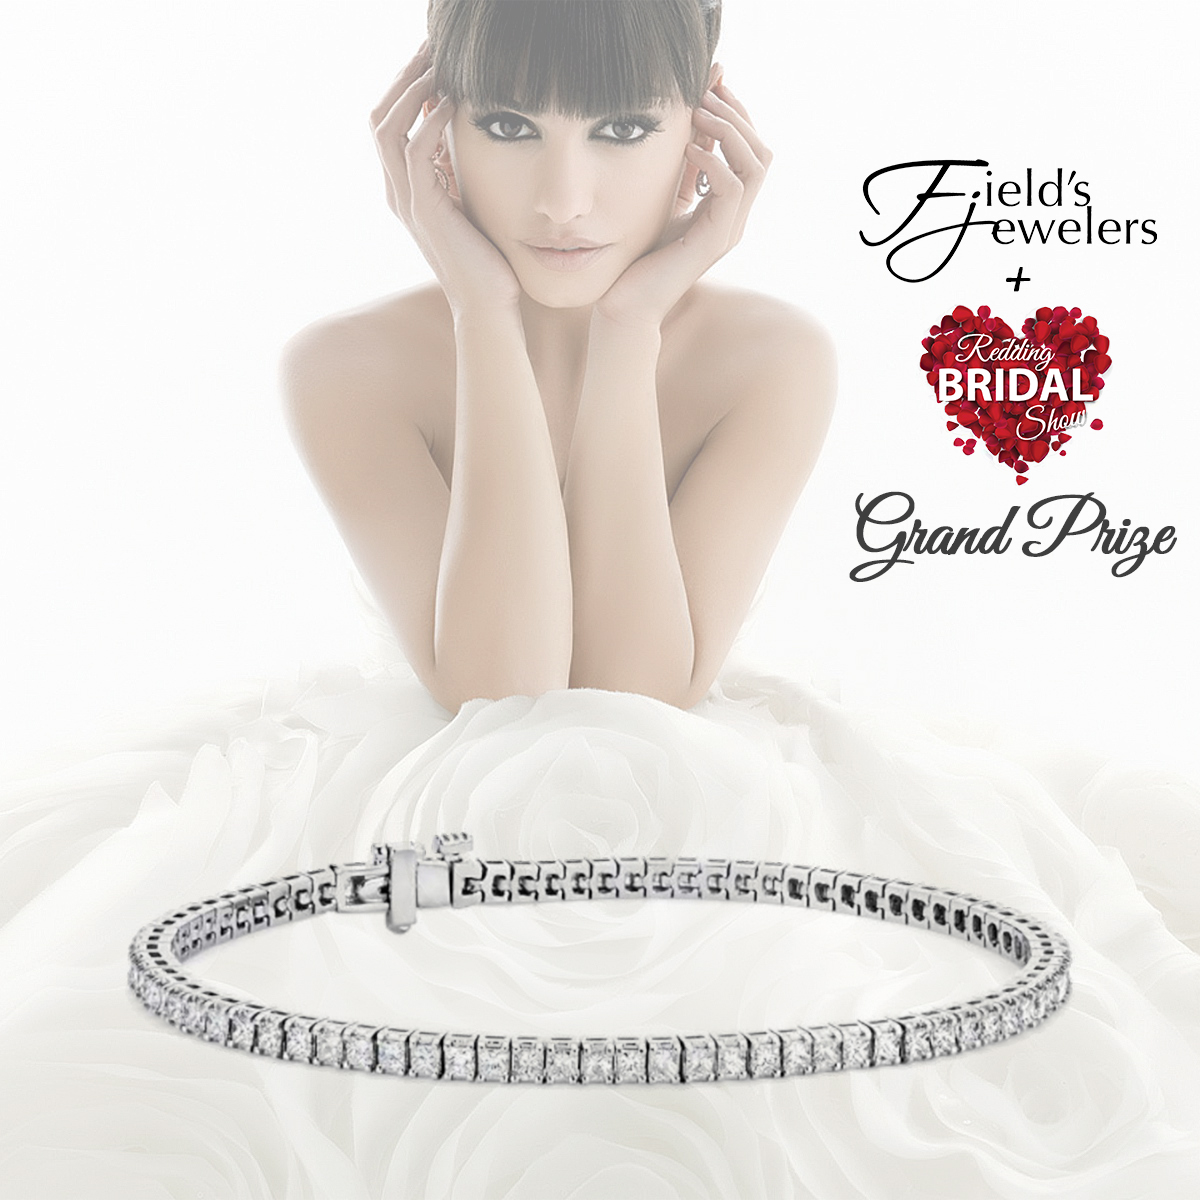 REDDING JEWELERS • REDDING BRIDAL SHOW •  REDDING CIVIC AUDITORIUM